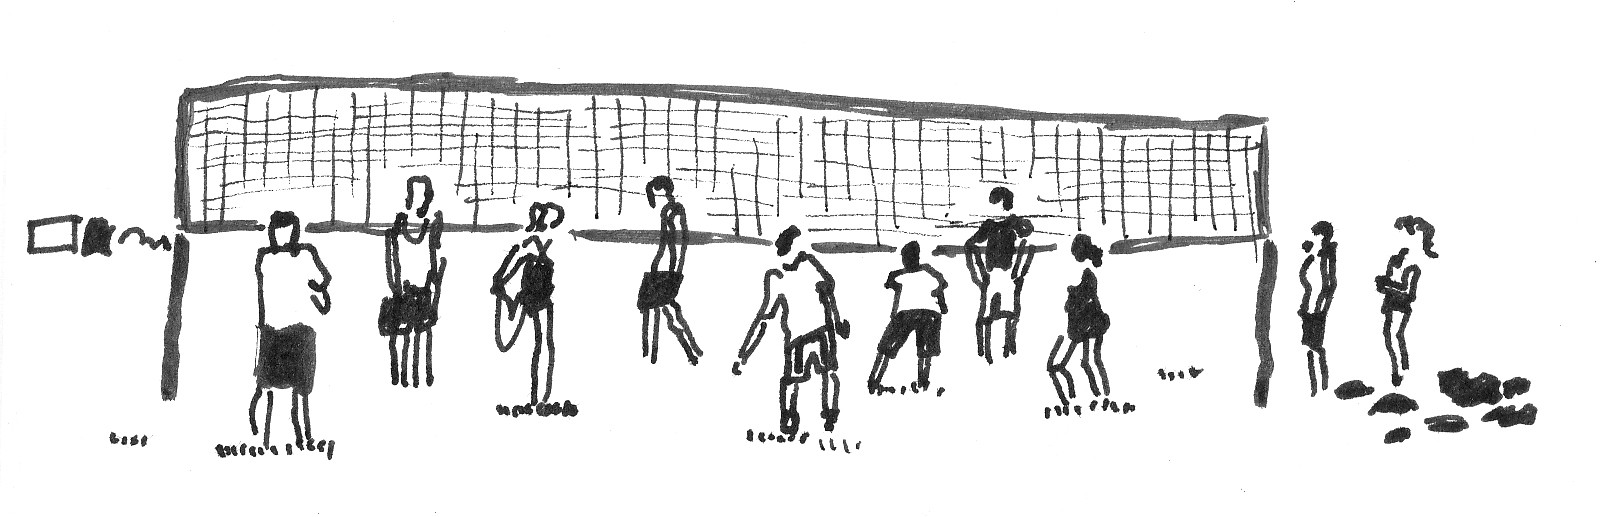 A sketch of people playing volleyball